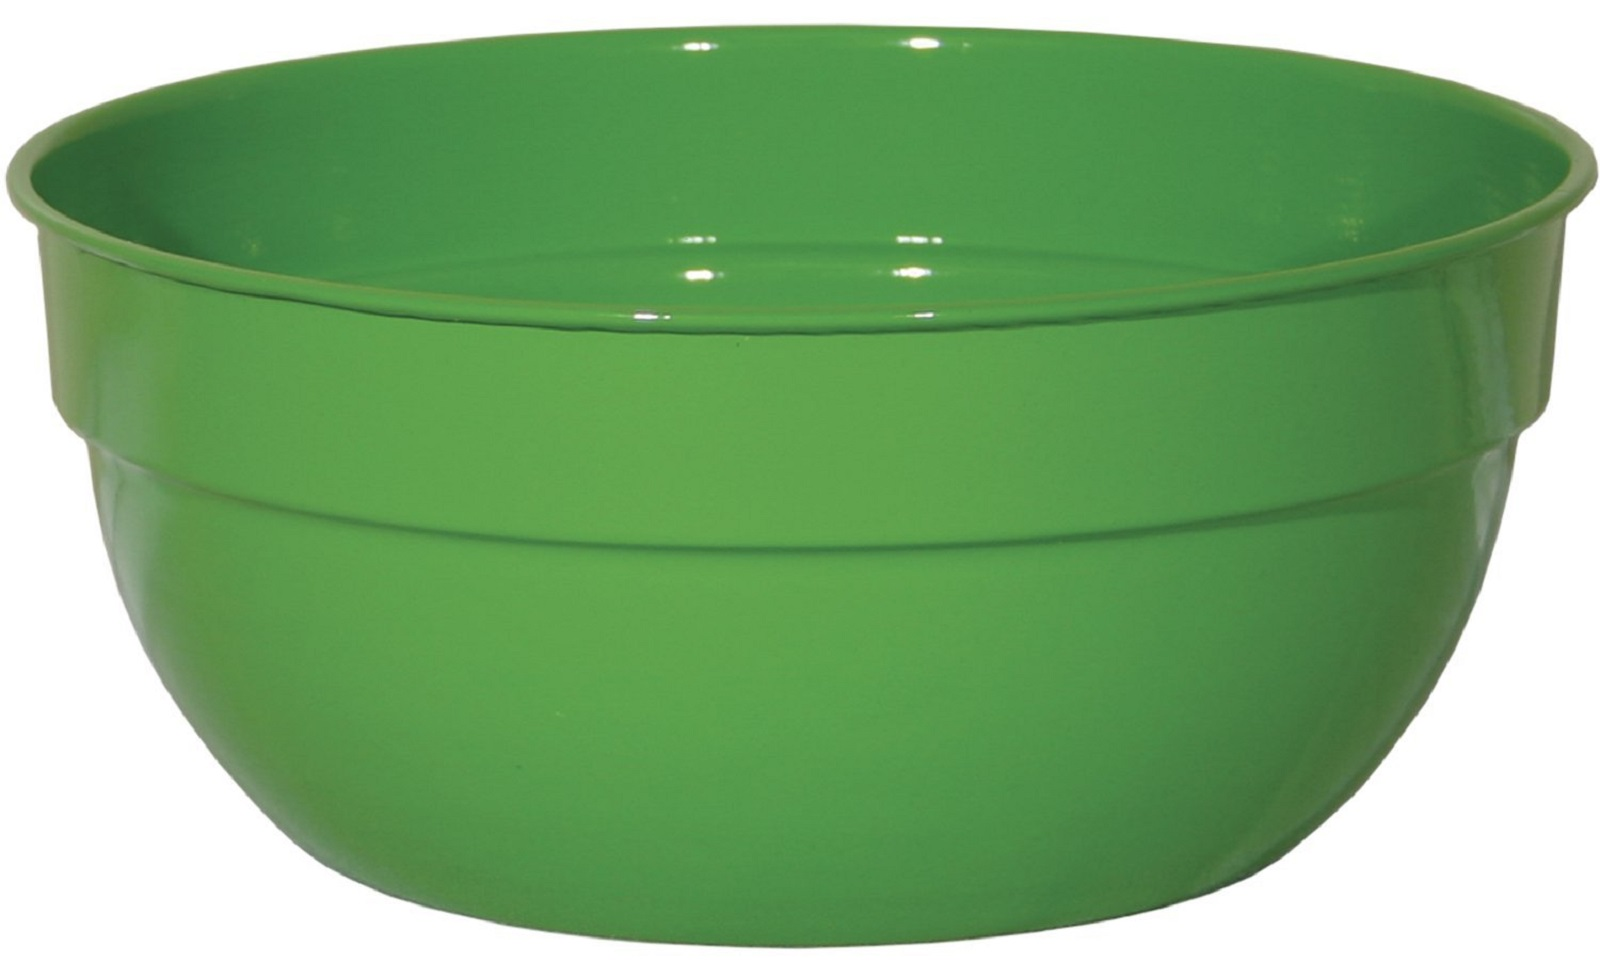 "Robert Allen Home & Garden Mini Bella Classic Bowl Planter 8"""" Paradise"